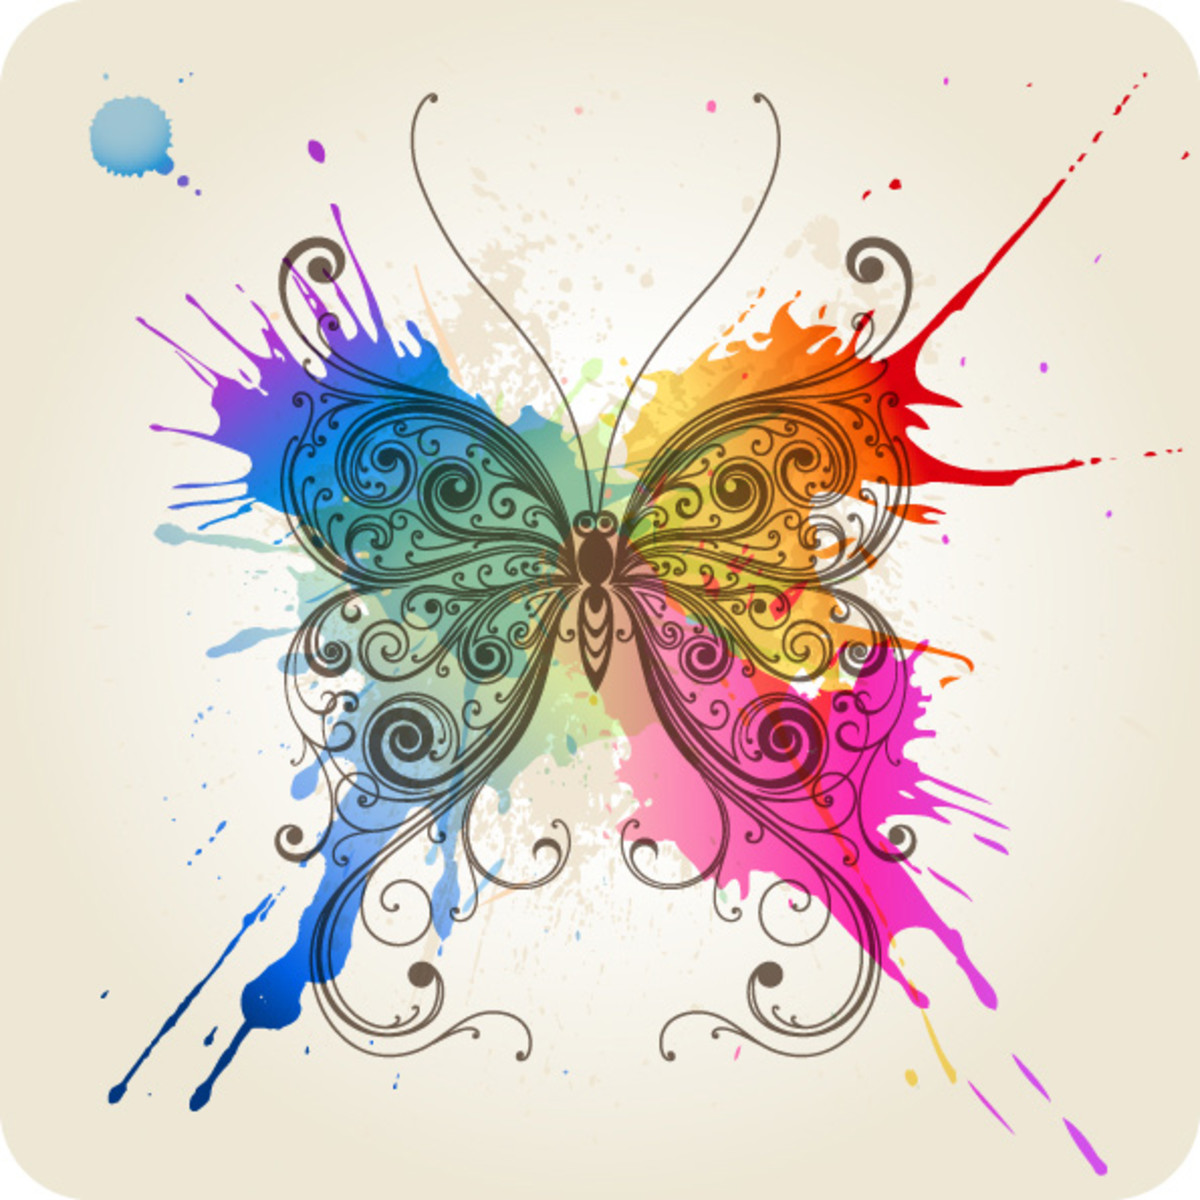 Butterfly with Splashes of Paint